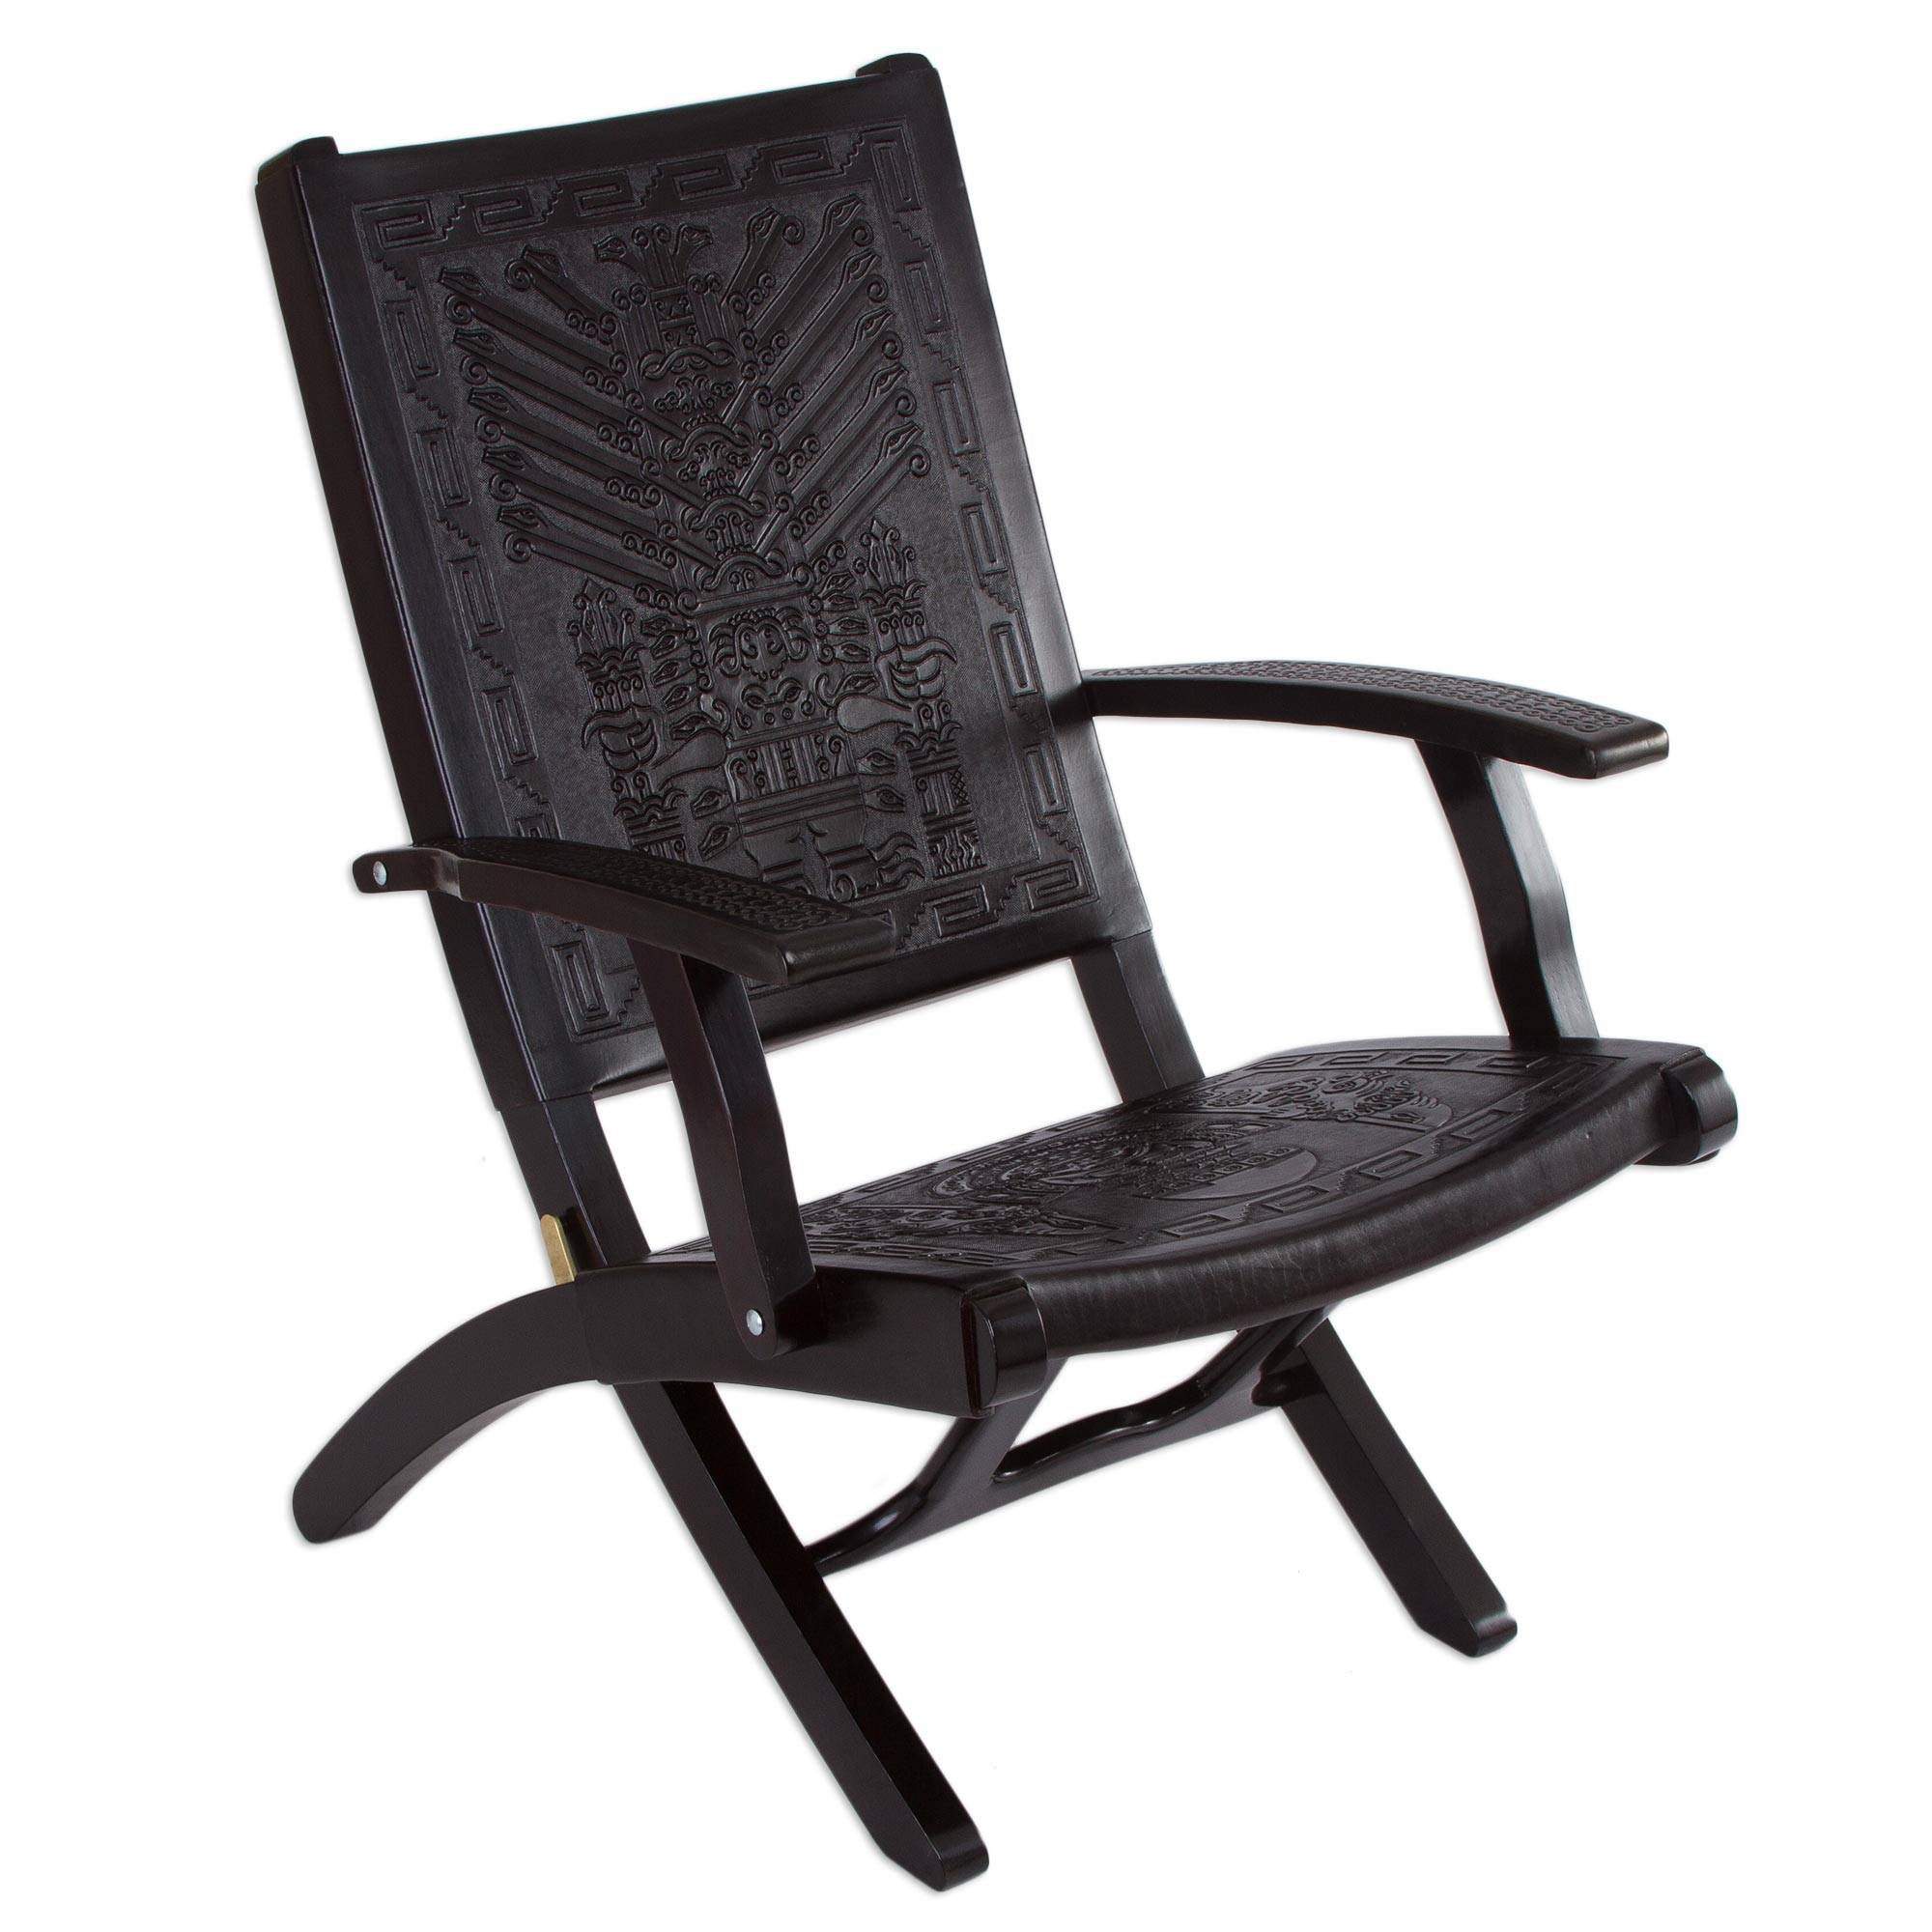 Hand Made Contemporary Leather Wood Chair Inca Gods